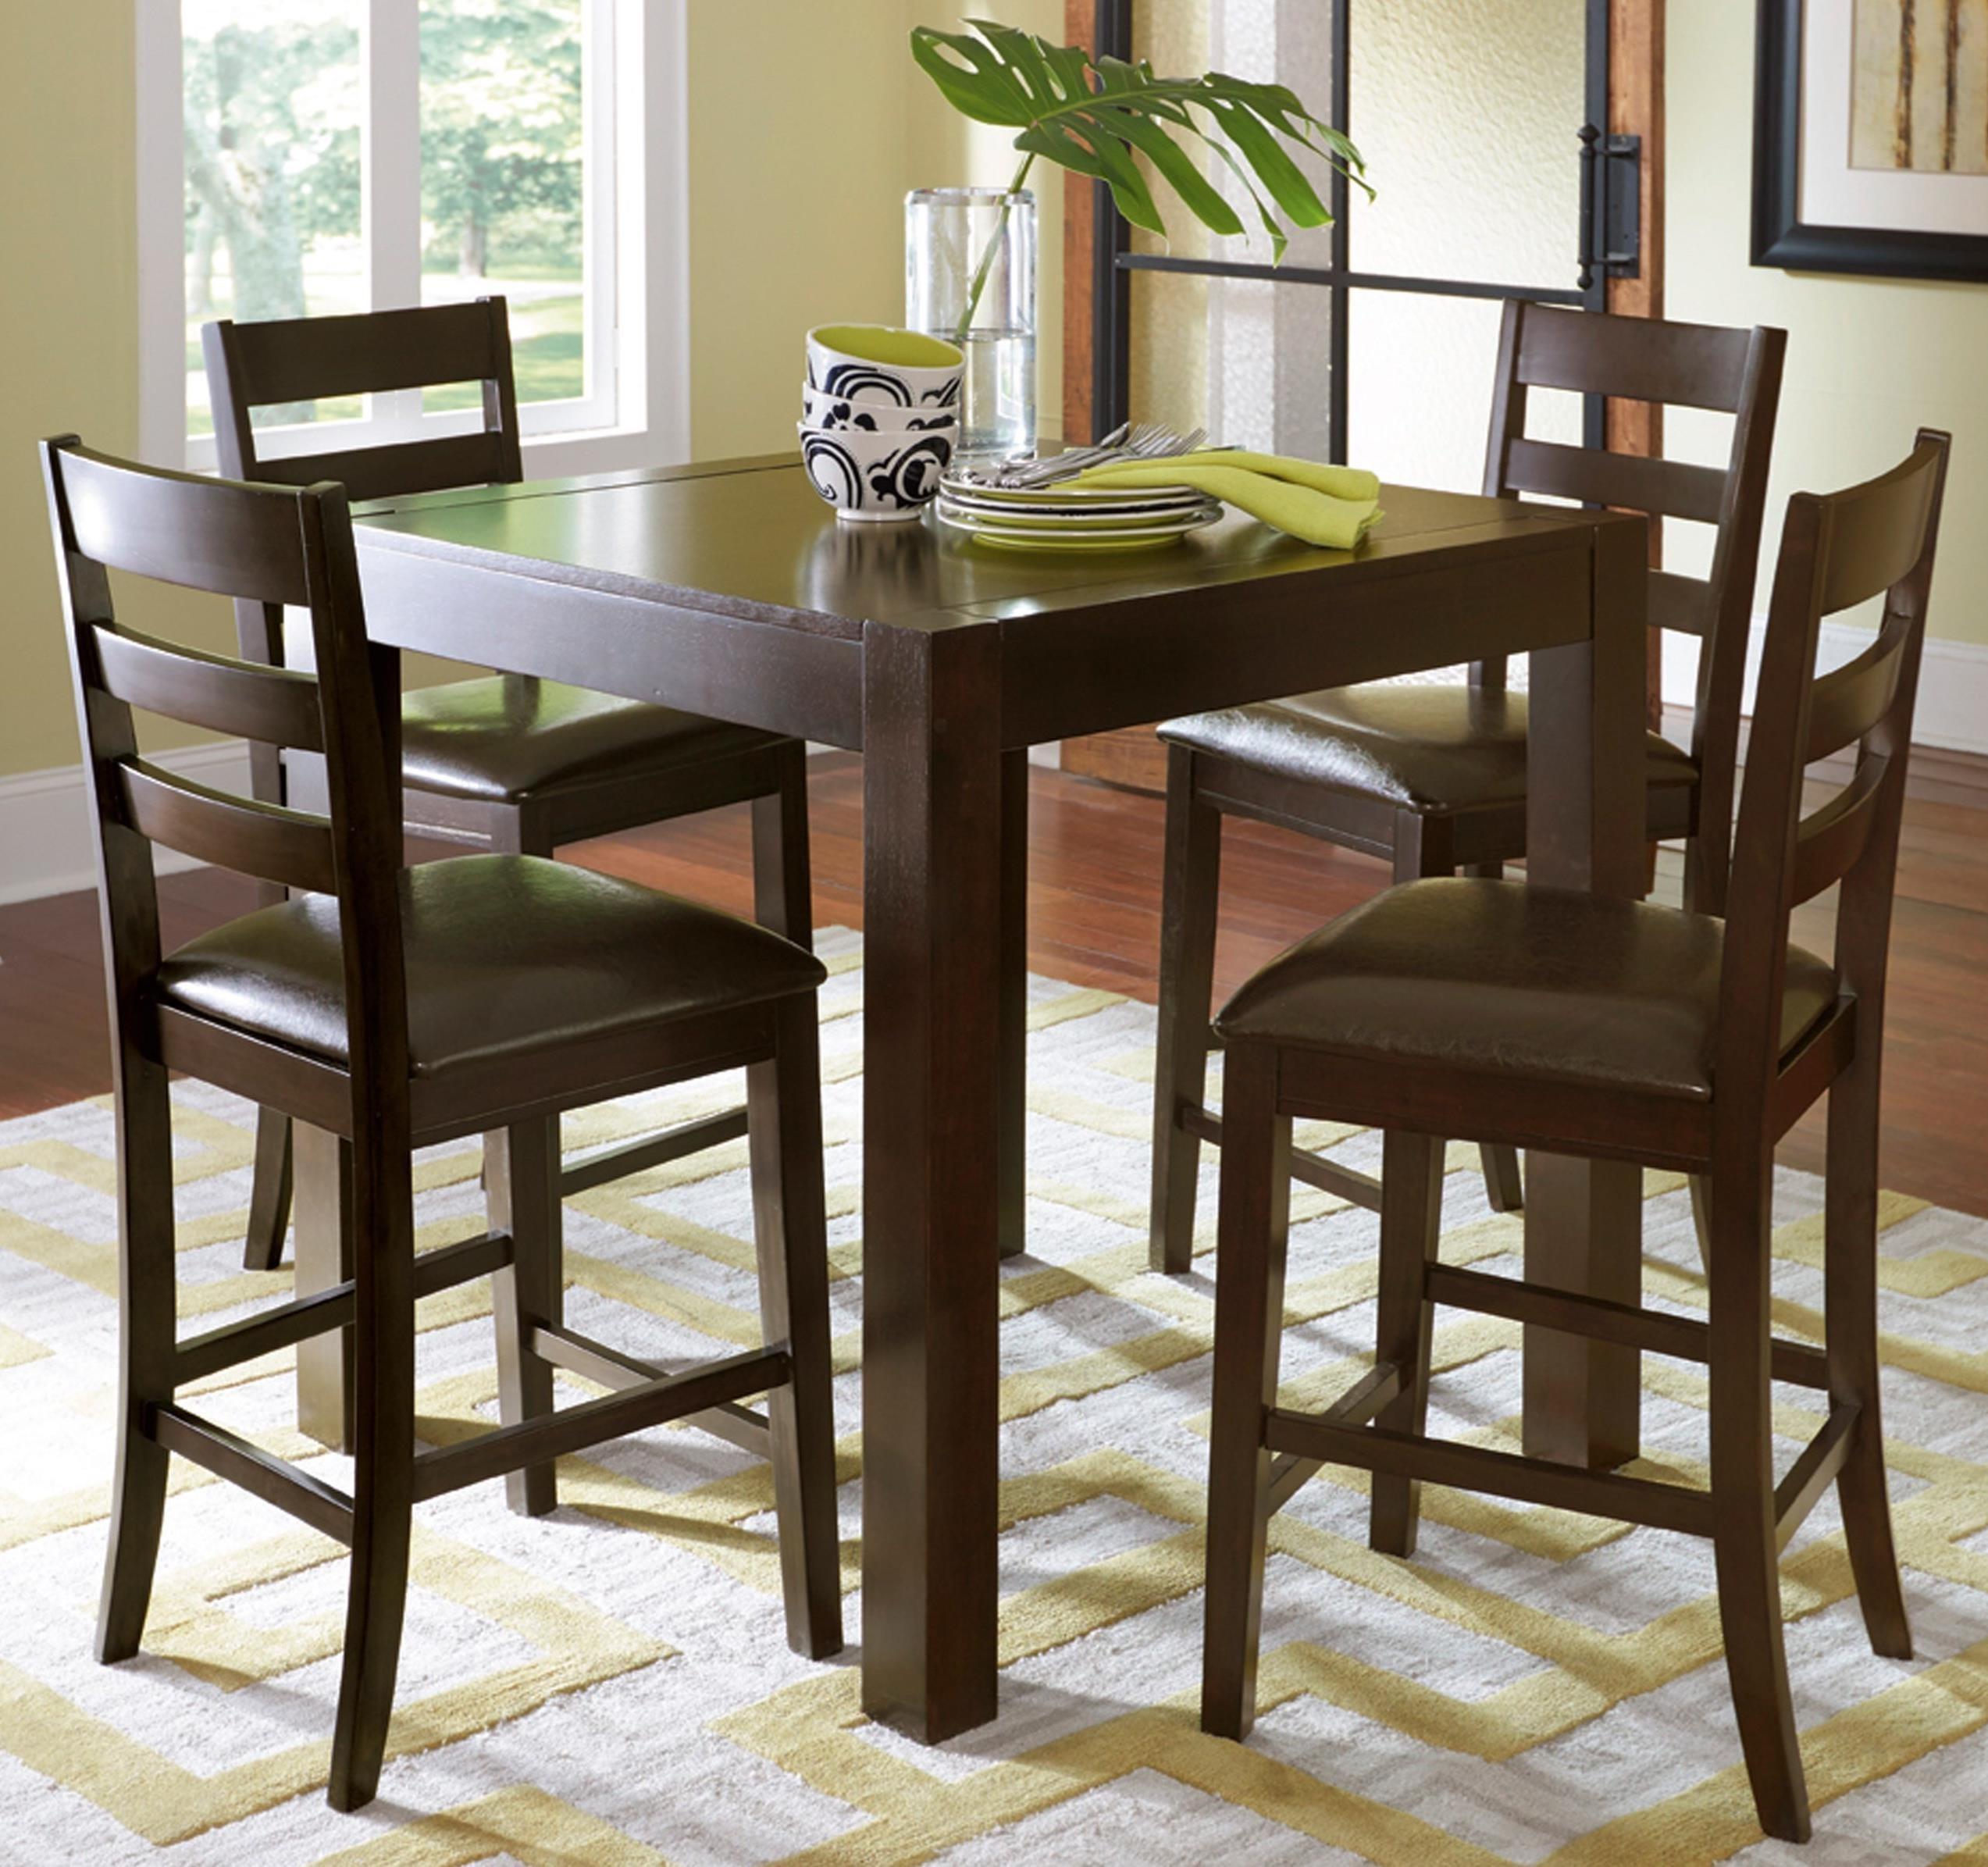 Progressive Furniture Amini 5-Piece Butterfly Counter Table Set - Item Number: P868-12+4x63